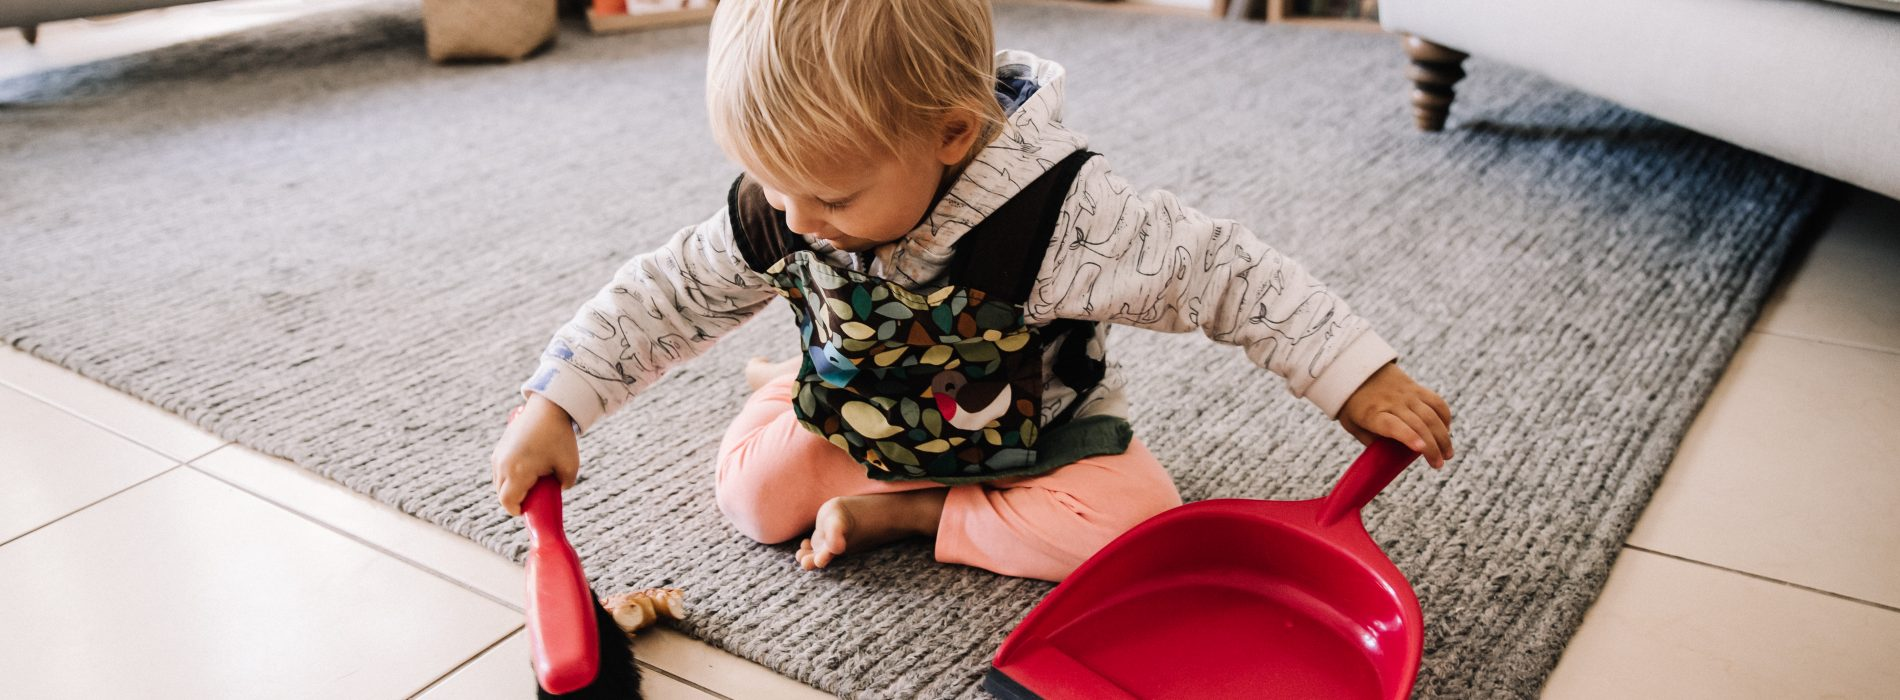 Two year old using dustpan and brush to sweep floor